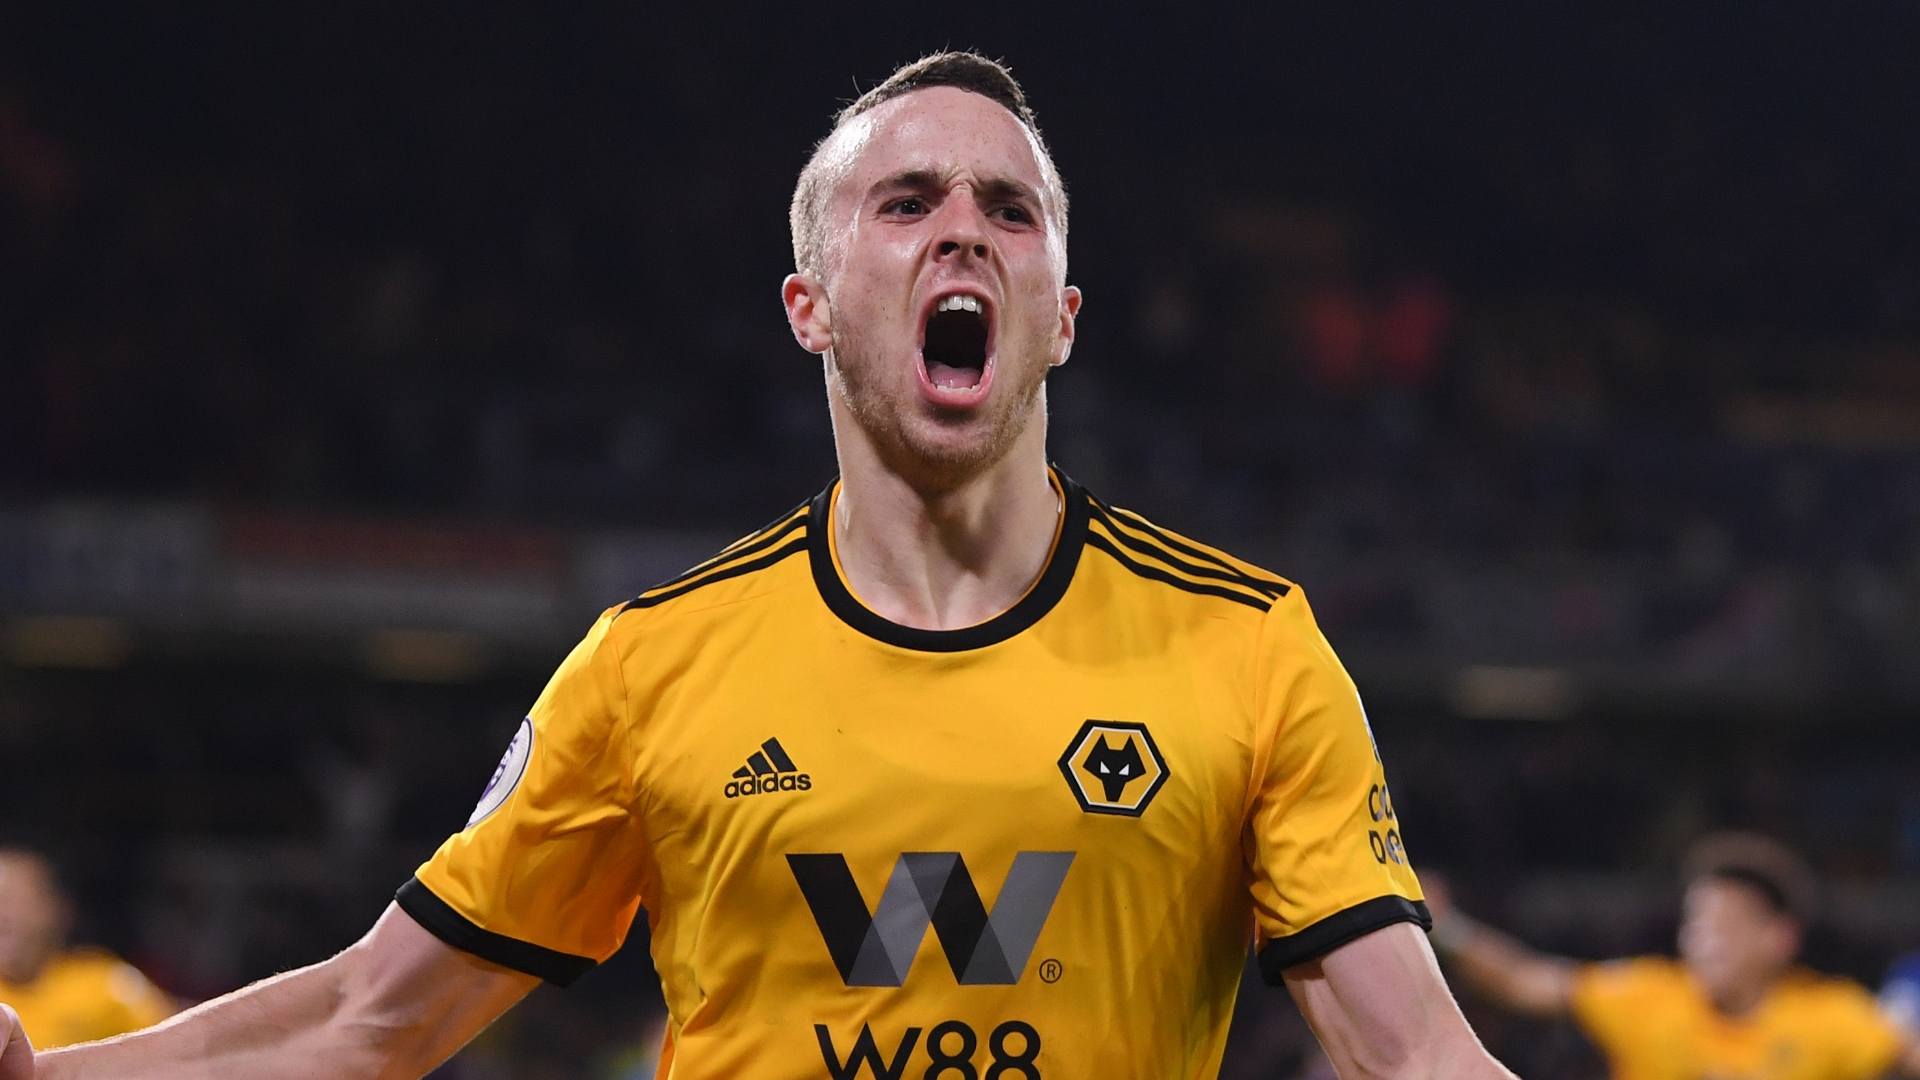 Wolves vs Crusaders Betting Tips: Latest odds, team news, preview and prediction